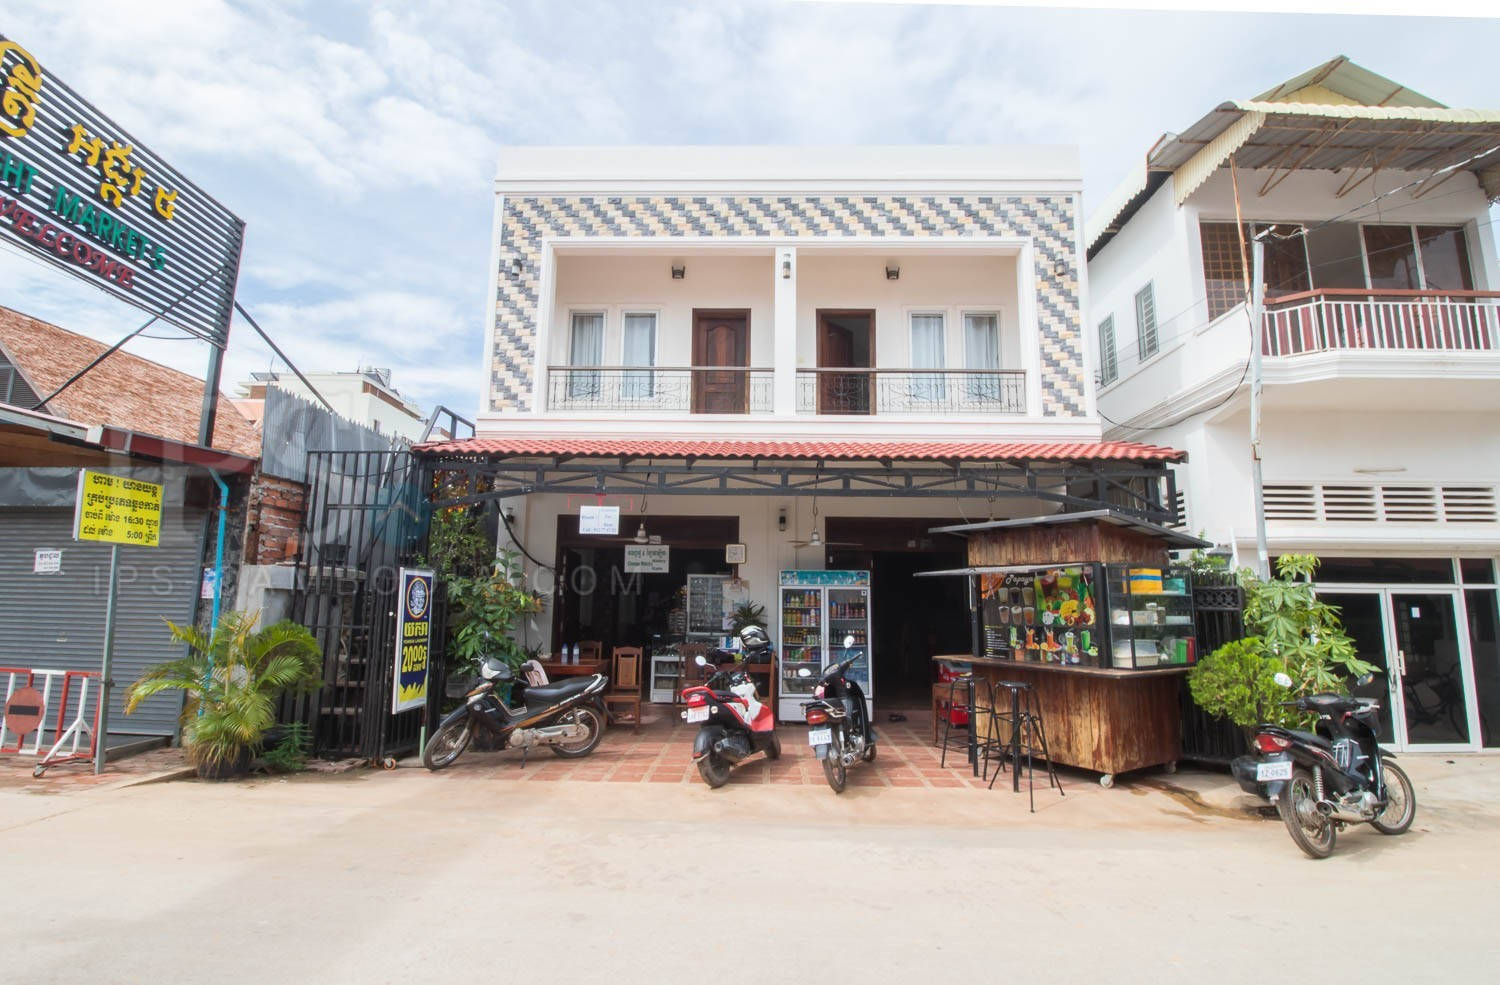 5 Bedroom Villa Behind Night Market - Siem Reap Rentals